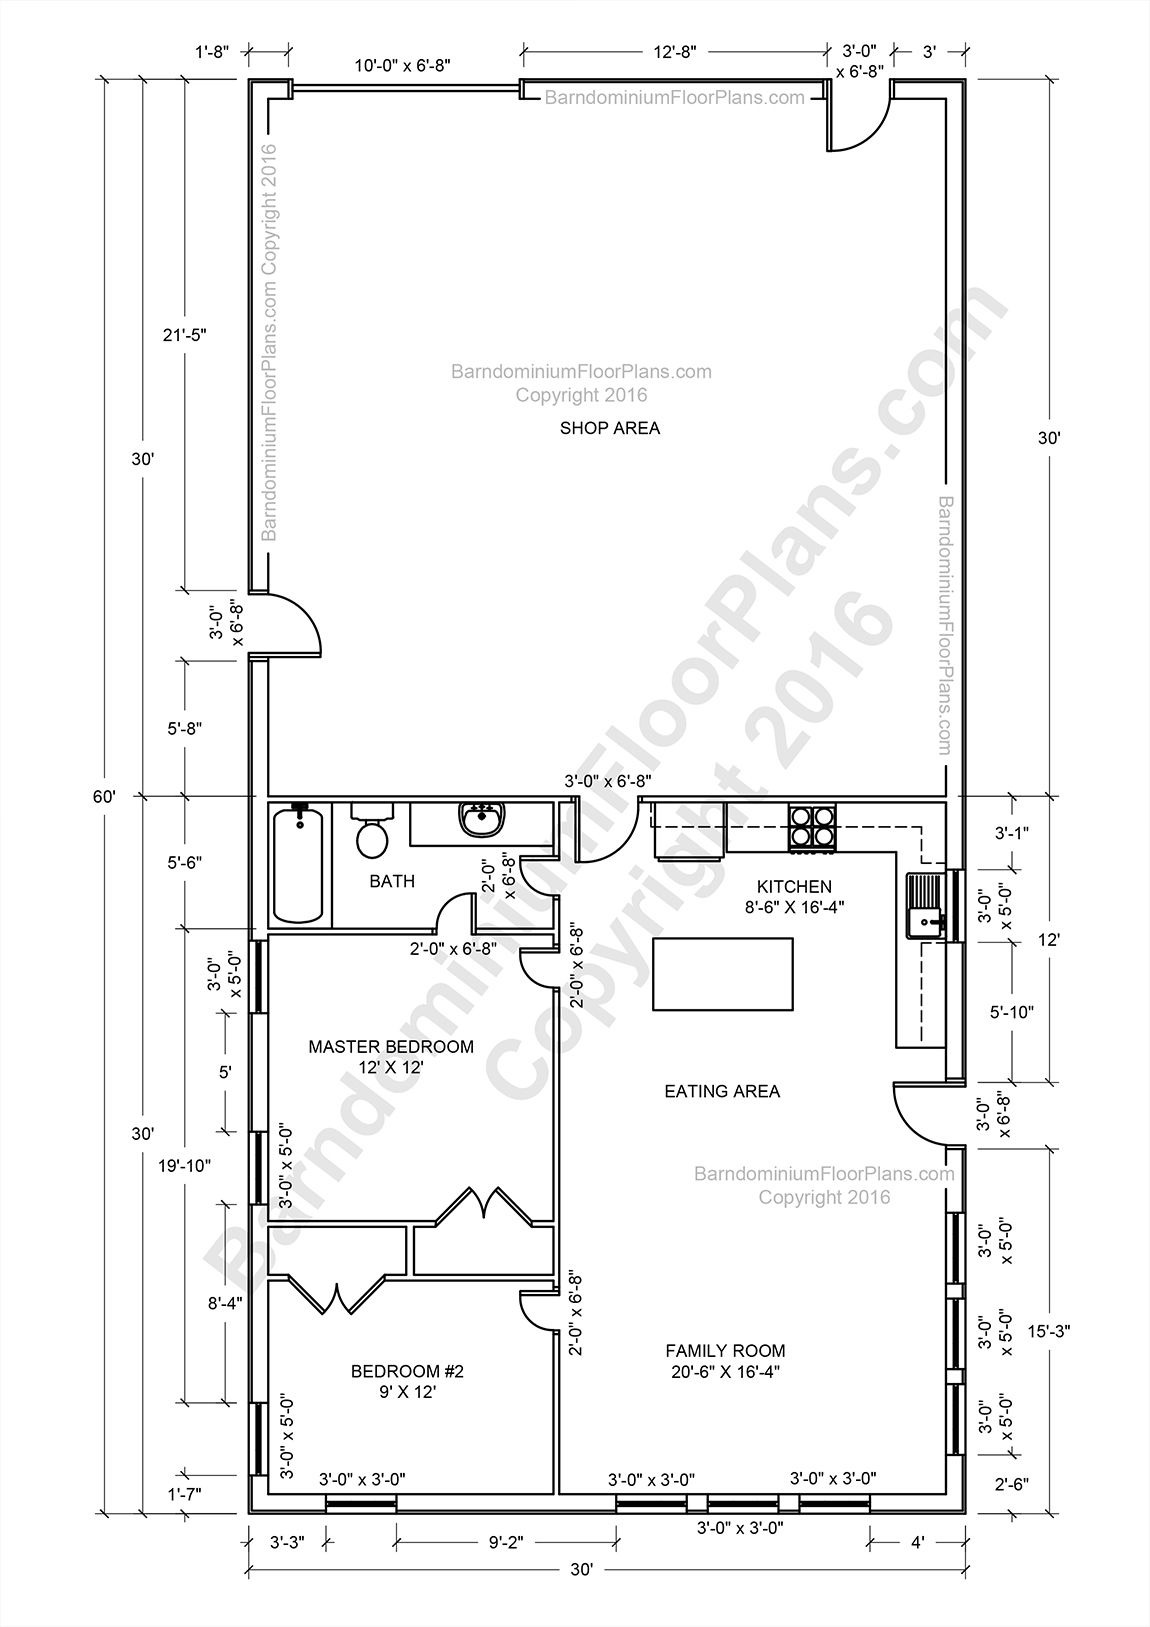 Building A House Layout Awesome Barndominium Floor Plans Pole Barn House and Metal Building